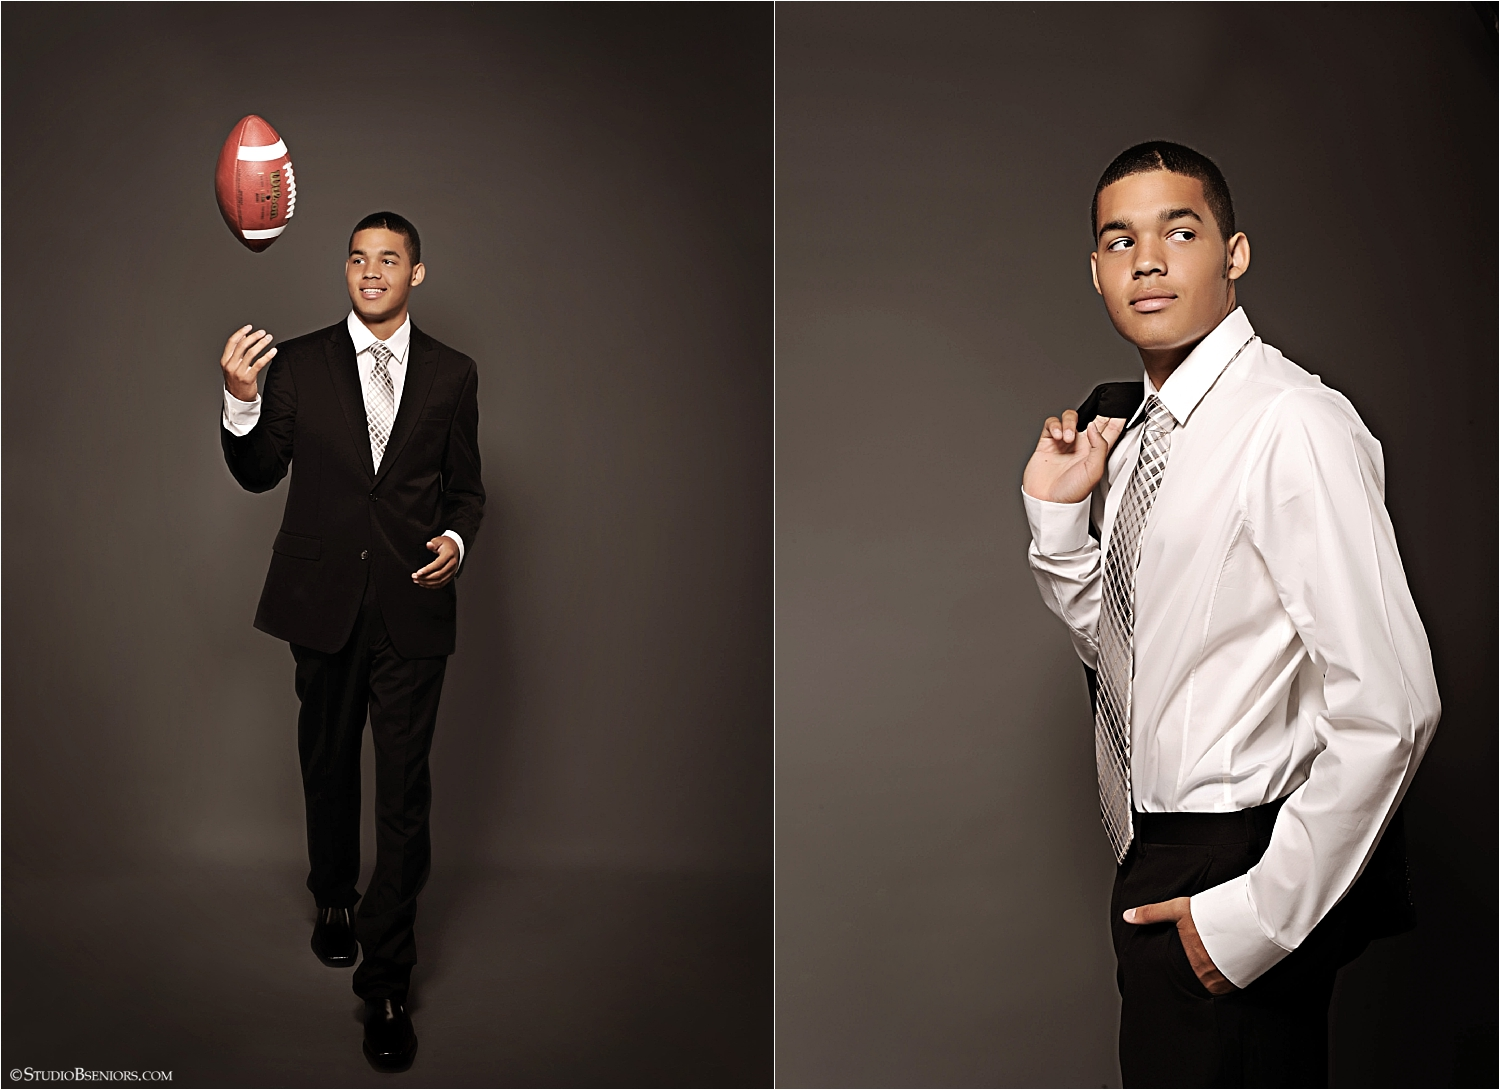 Senior guy in suit with football